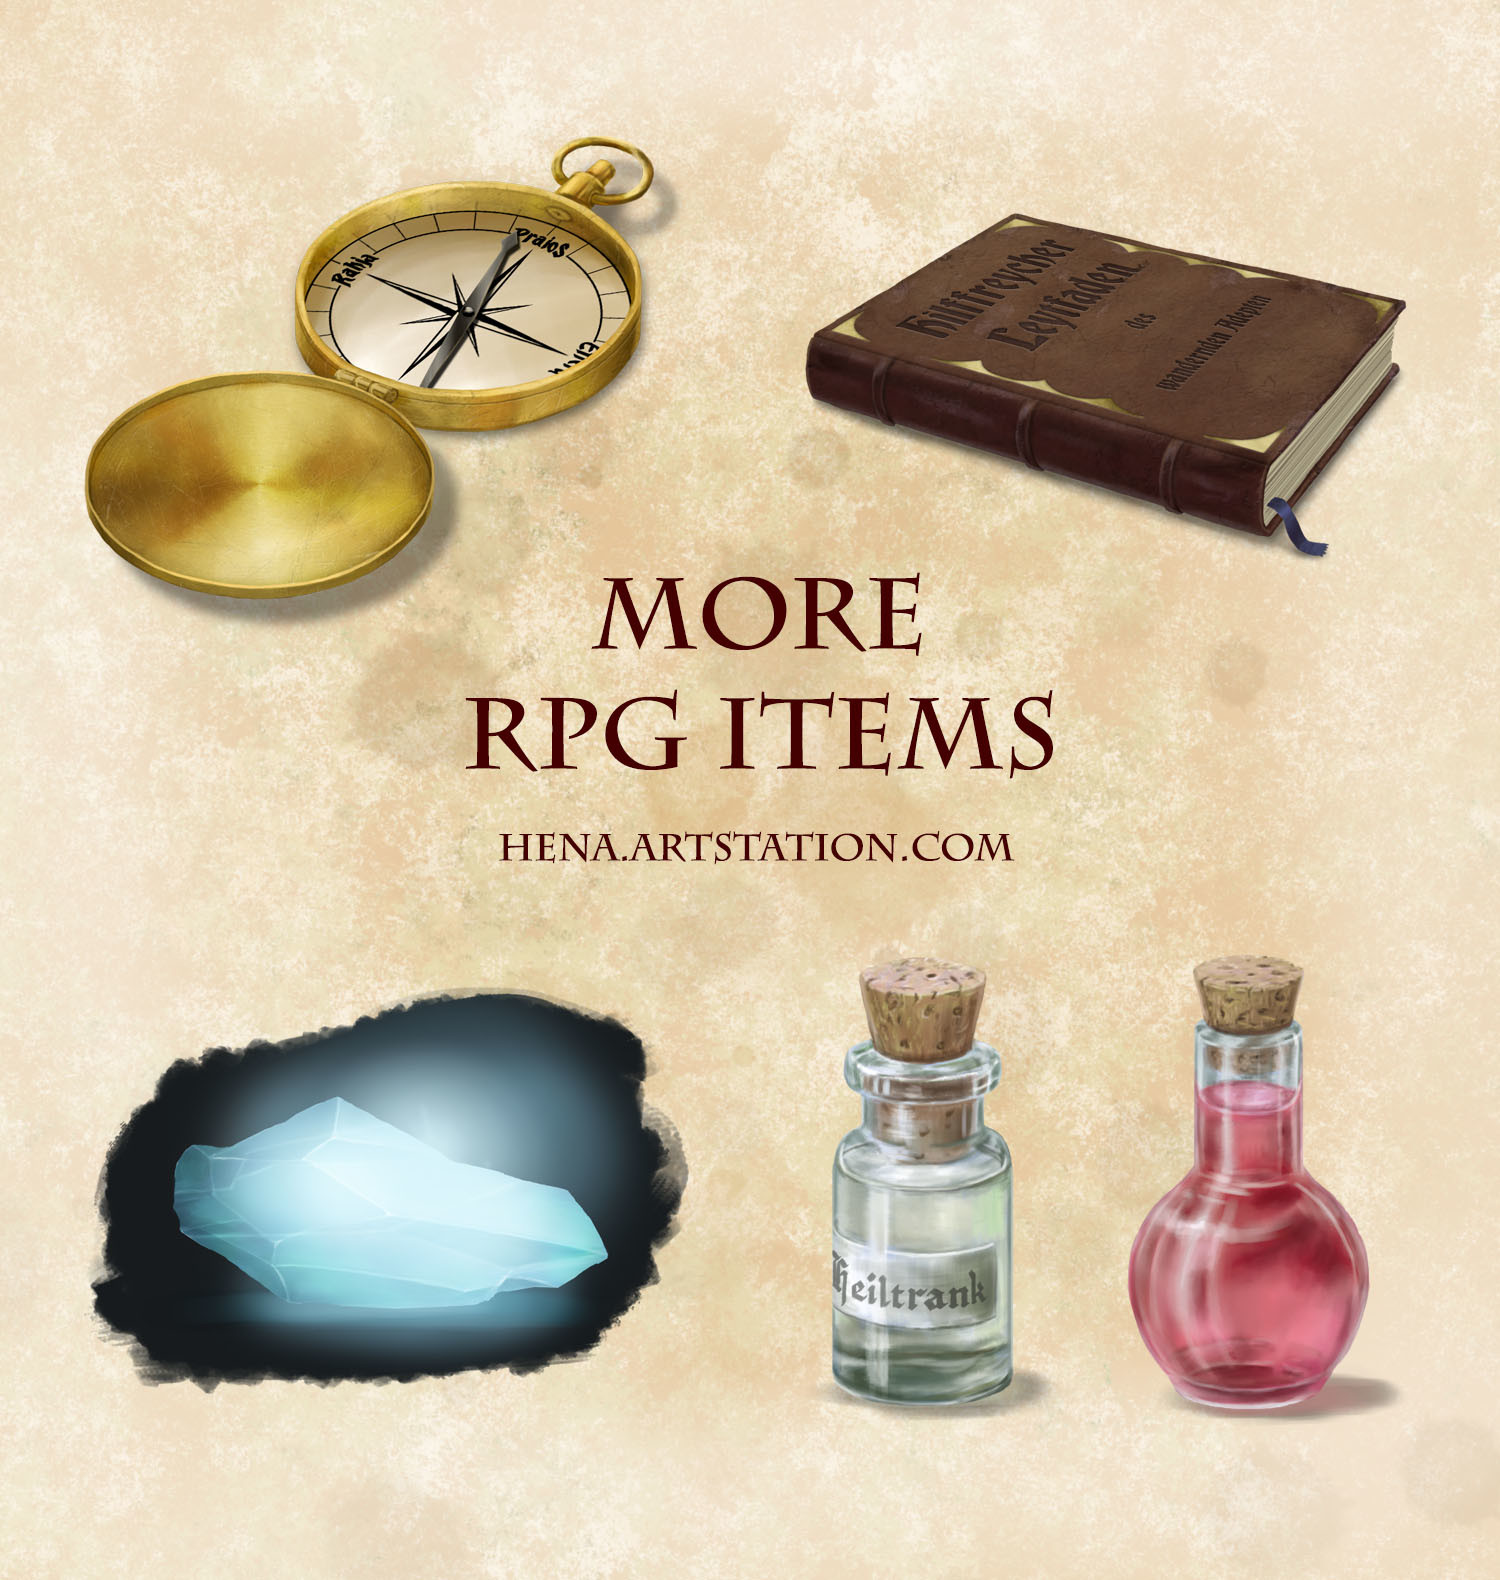 Karin wittig more rpg items as